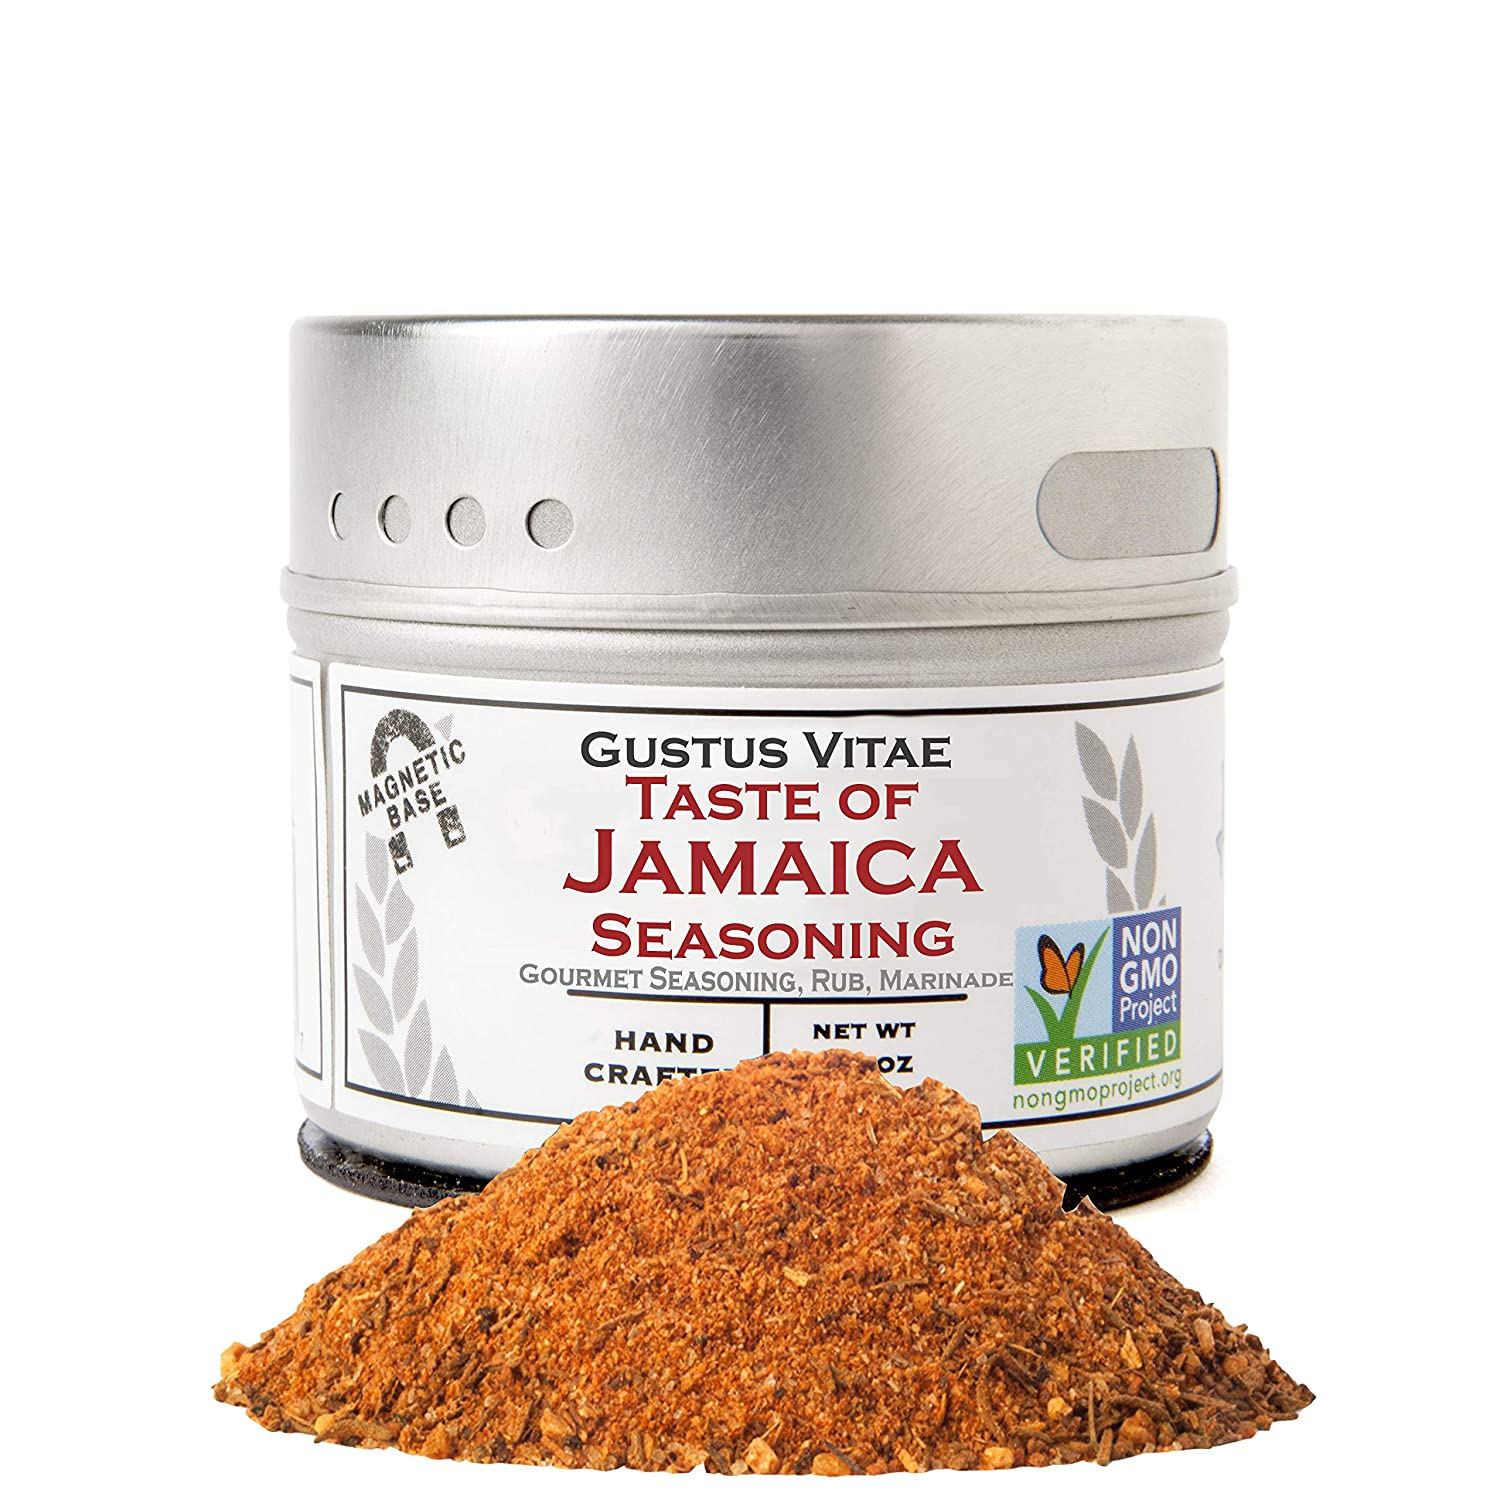 Taste of Jamaica Jerk Seasoning & Spice Blend - Authentic Artisan Gourmet Blend - Non GMO - Crafted In Small Batches - All Natural - Magnetic Tin - Hand Packed - 1.5 Ounce